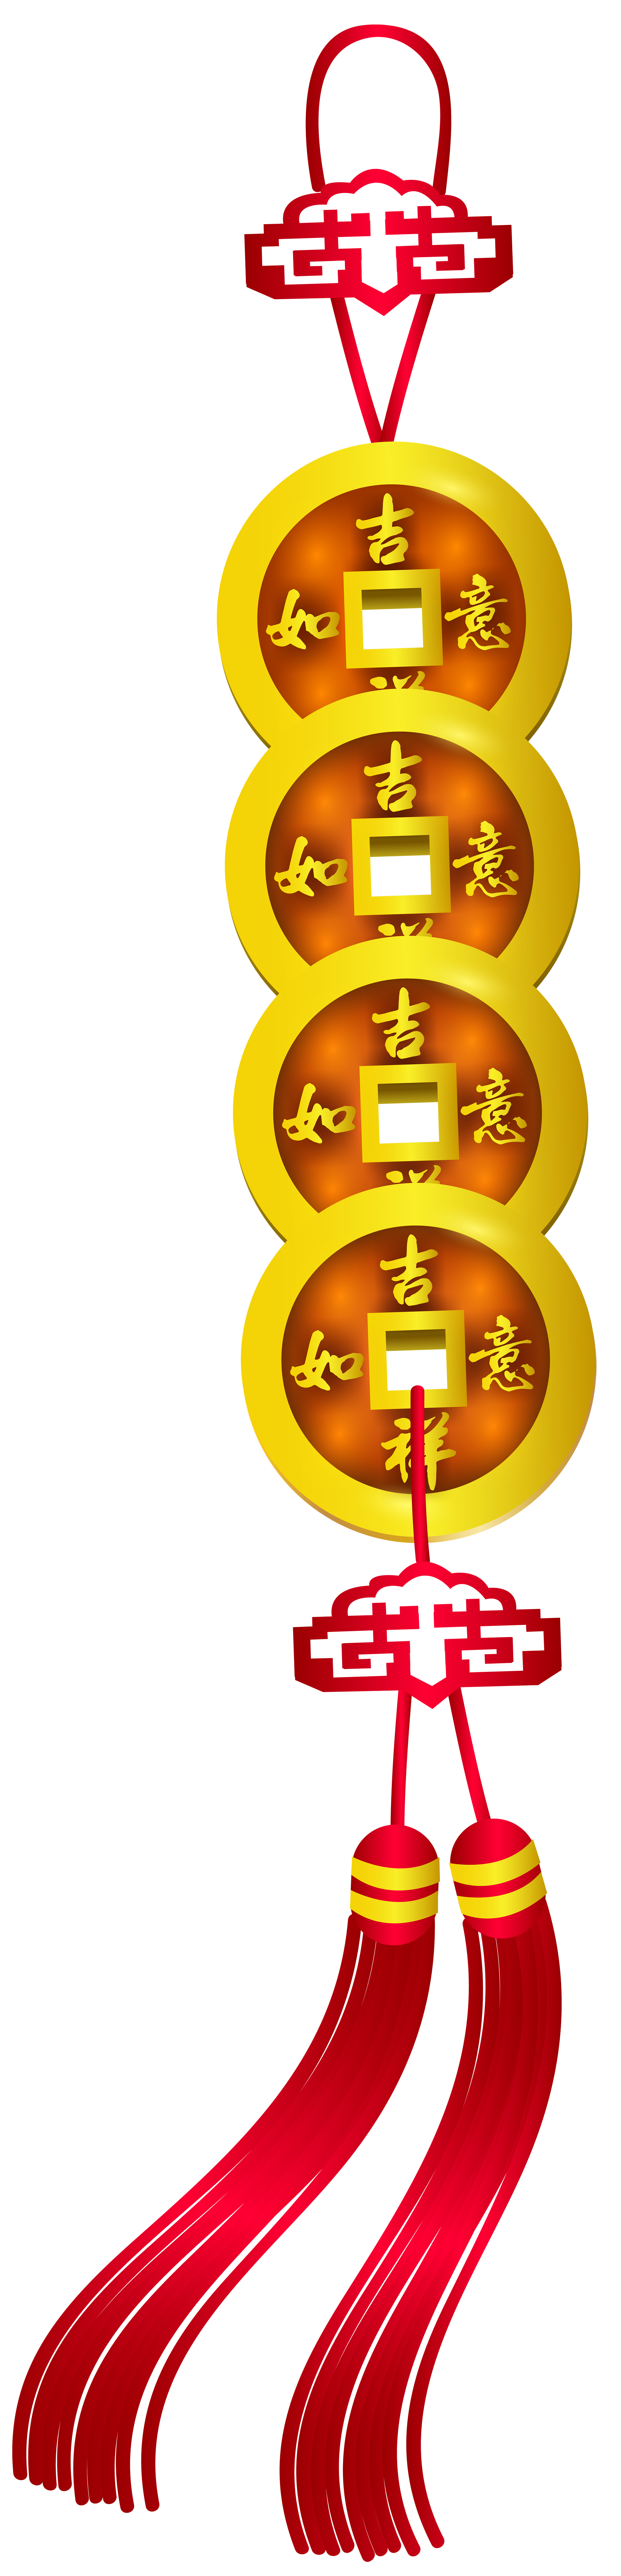 New year clip art png. Chinese decoration best web